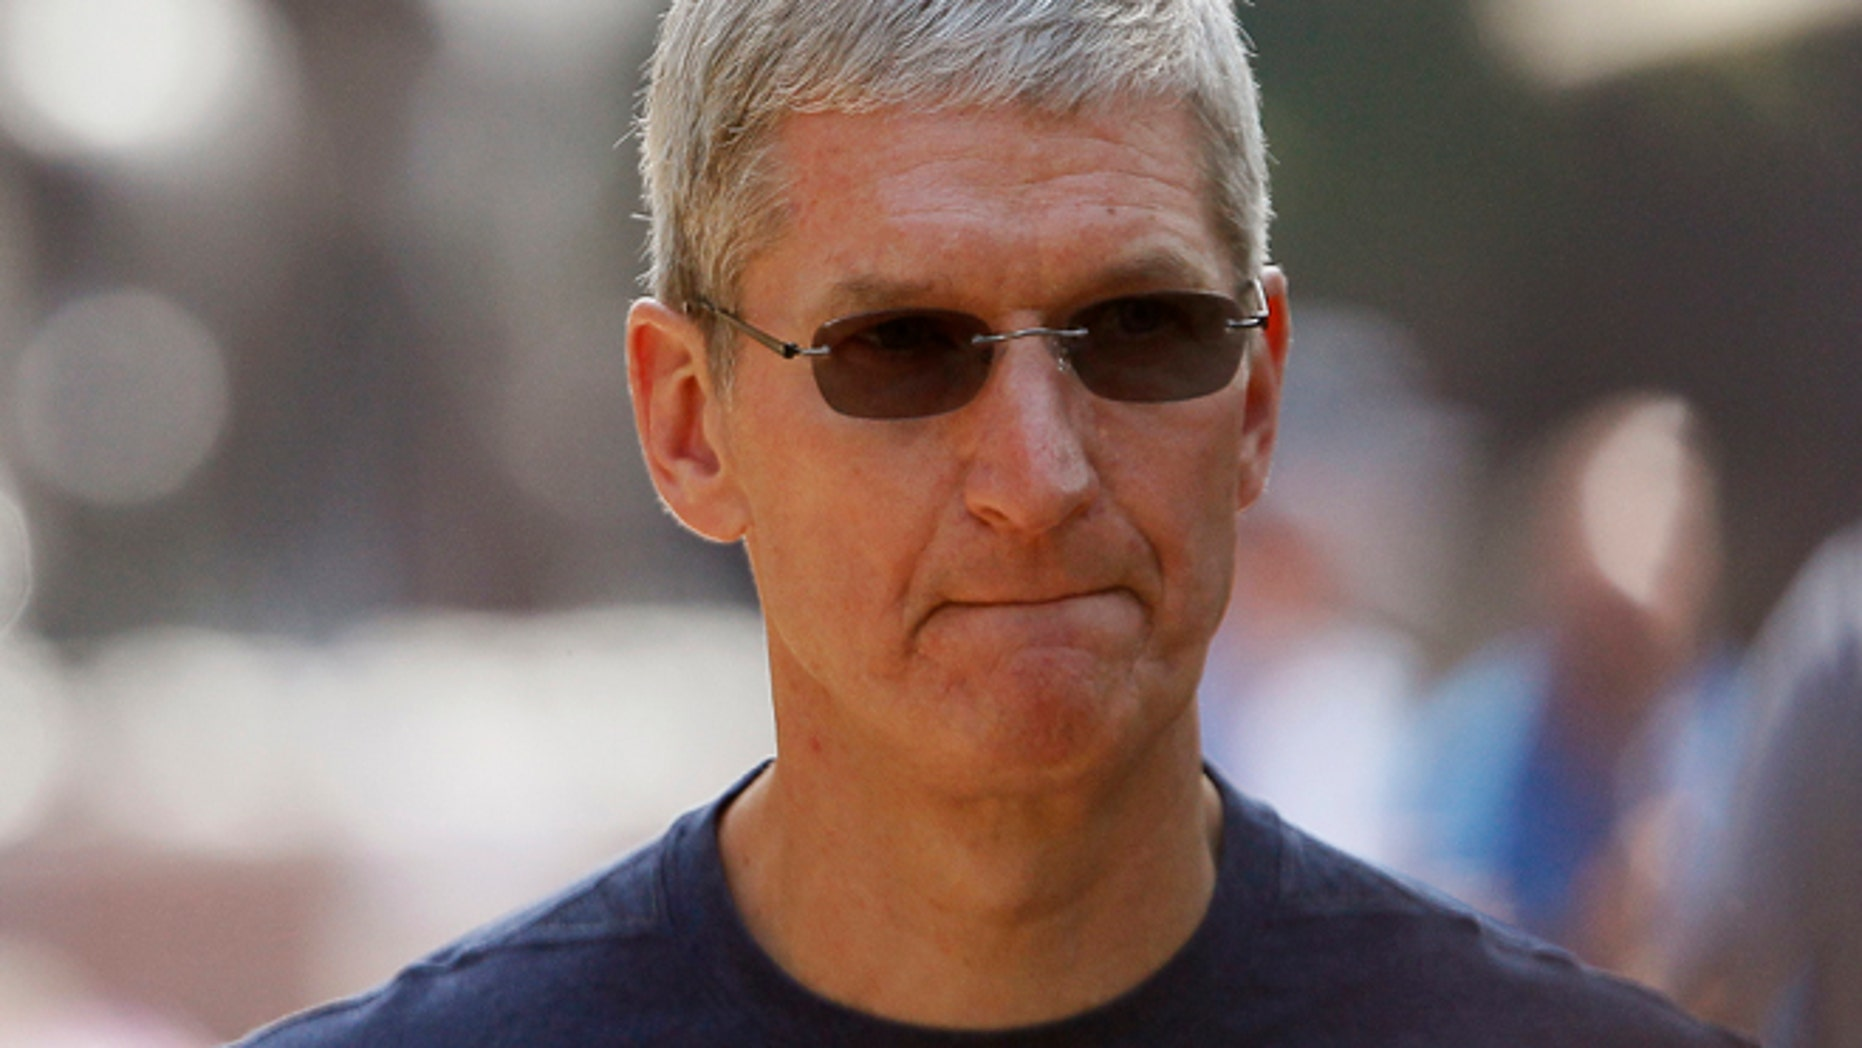 July 9: Apple Inc. CEO Tim Cook walks down a sidewalk during a break on the first day of the Allen and Co. media conference in Sun Valley.